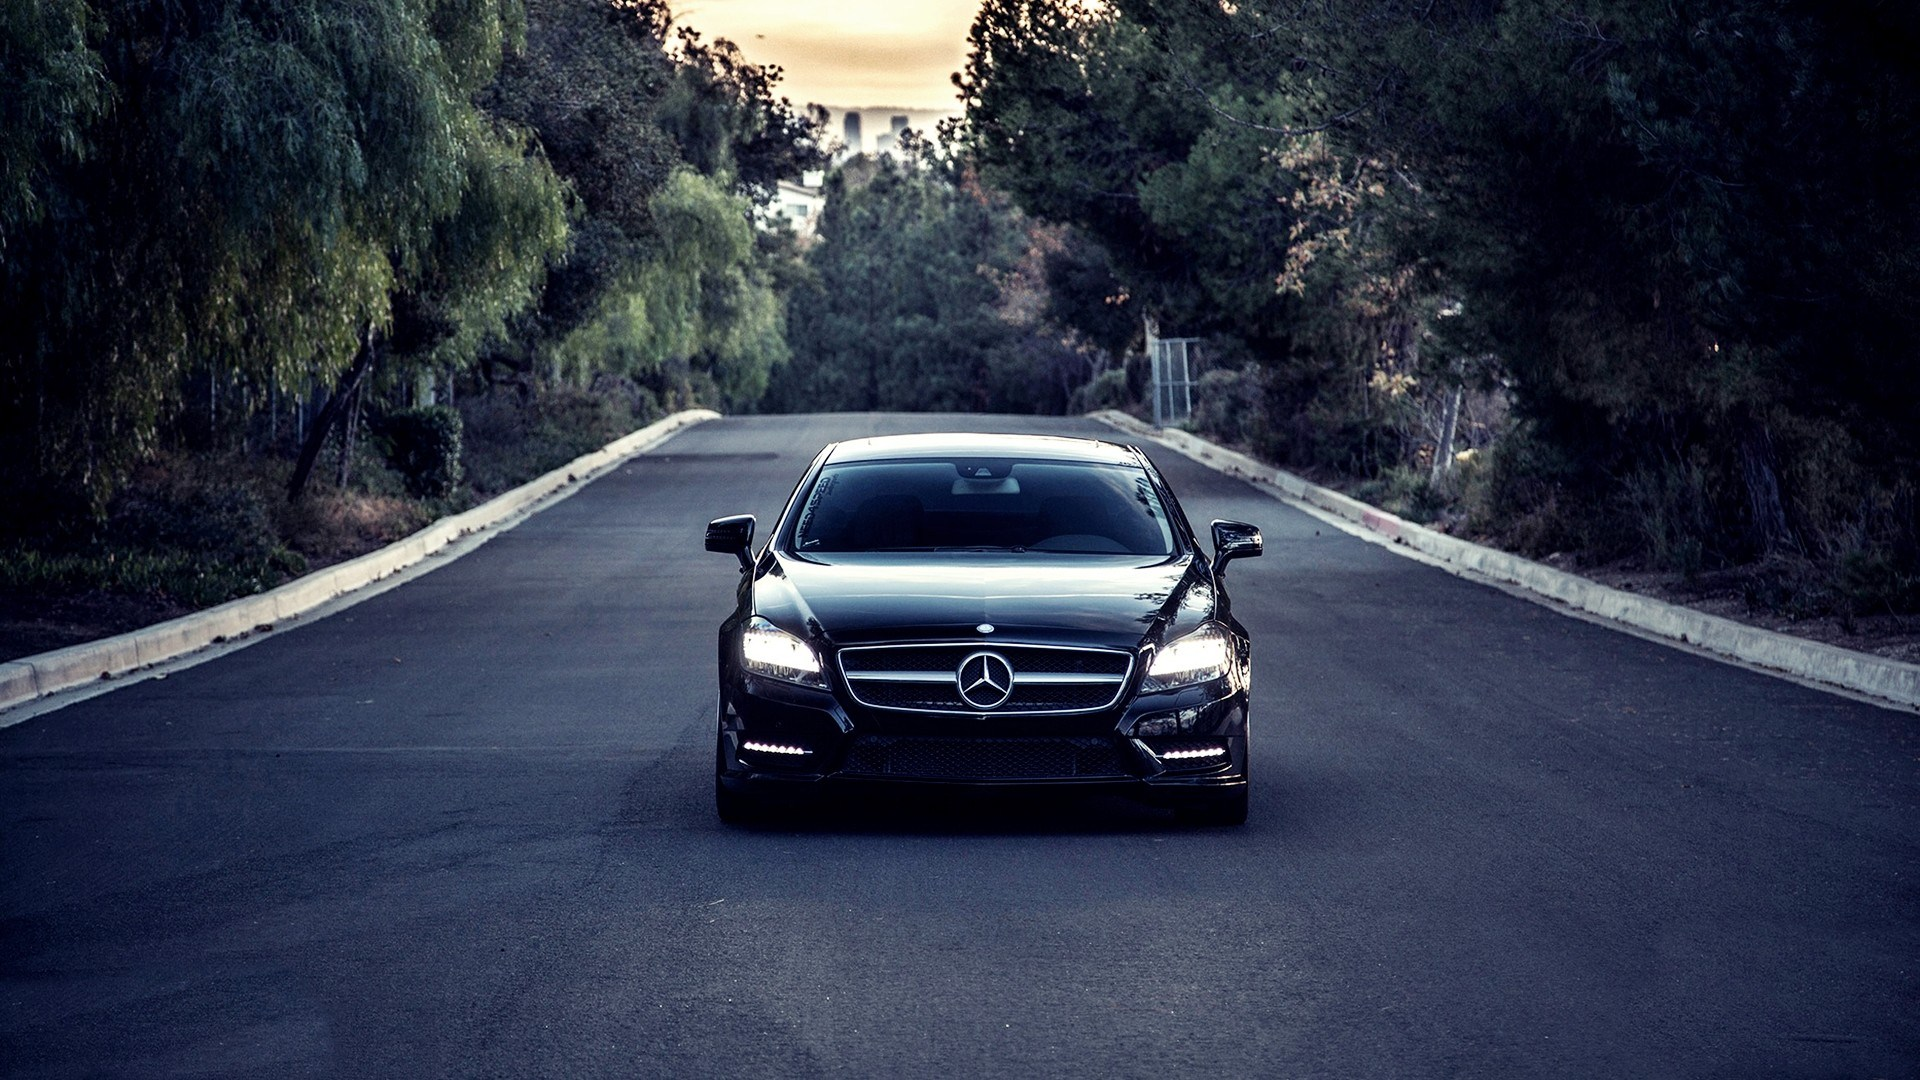 Mercedes Benz Hd Wallpapers Wallpapersafari